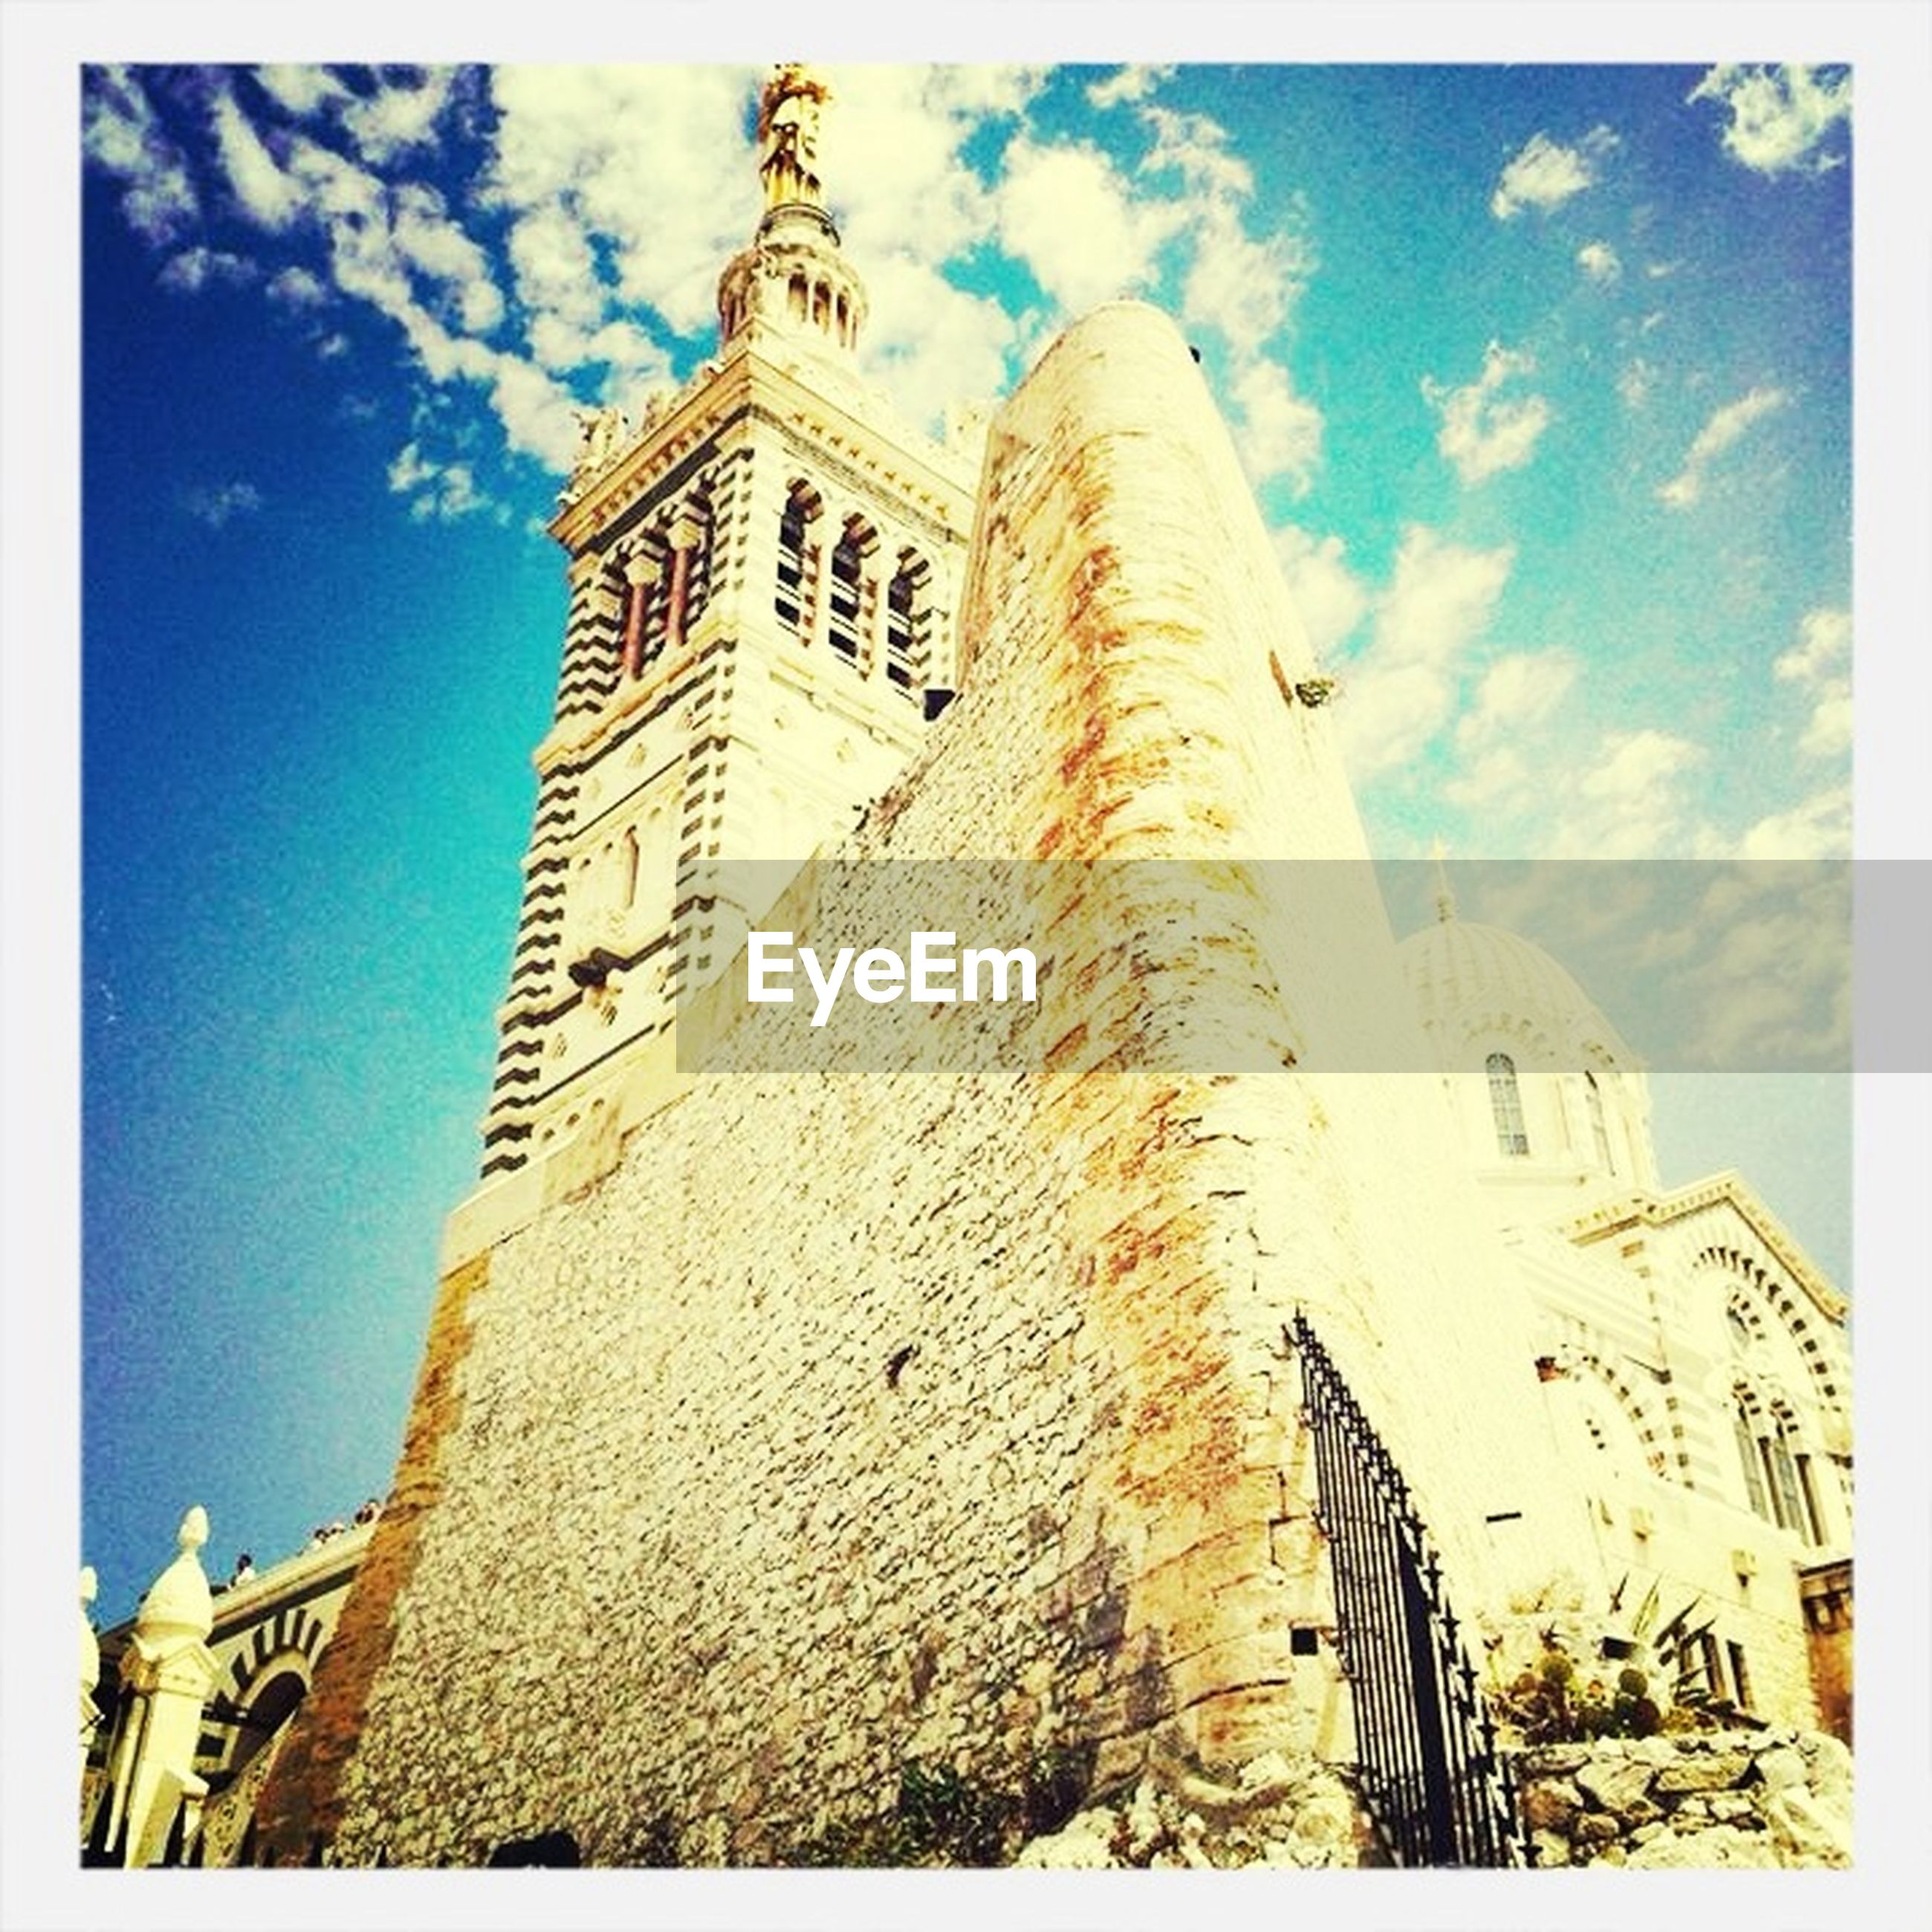 building exterior, architecture, built structure, low angle view, sky, transfer print, church, blue, religion, place of worship, tower, auto post production filter, spirituality, cathedral, history, clock tower, famous place, cloud - sky